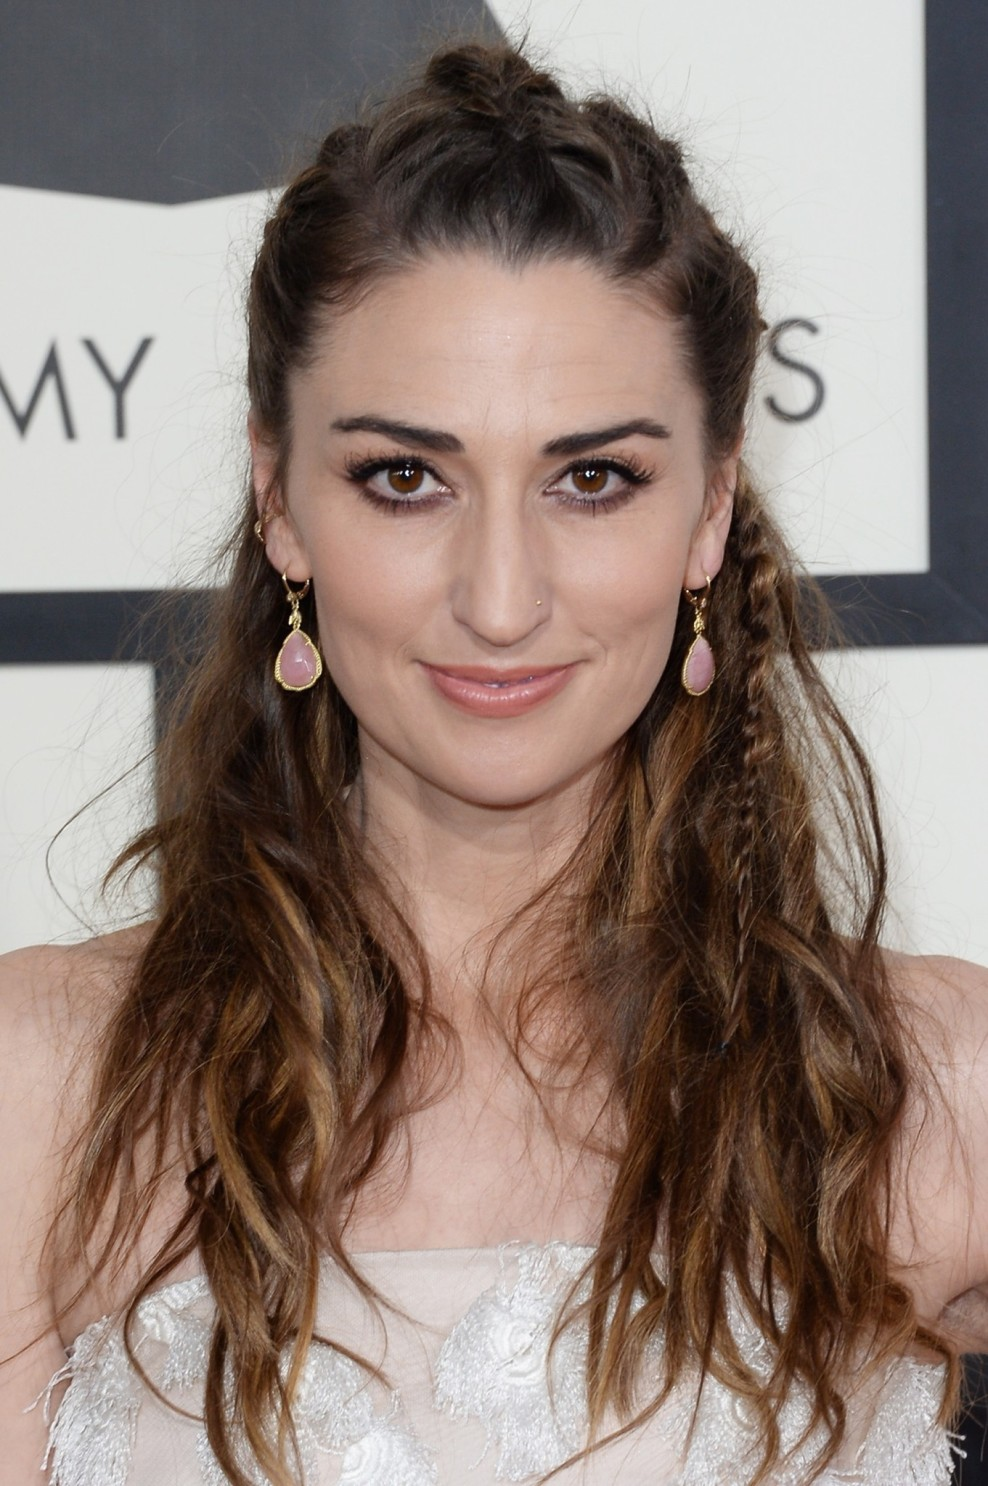 Sara Bareilles Hairstyle Pictures